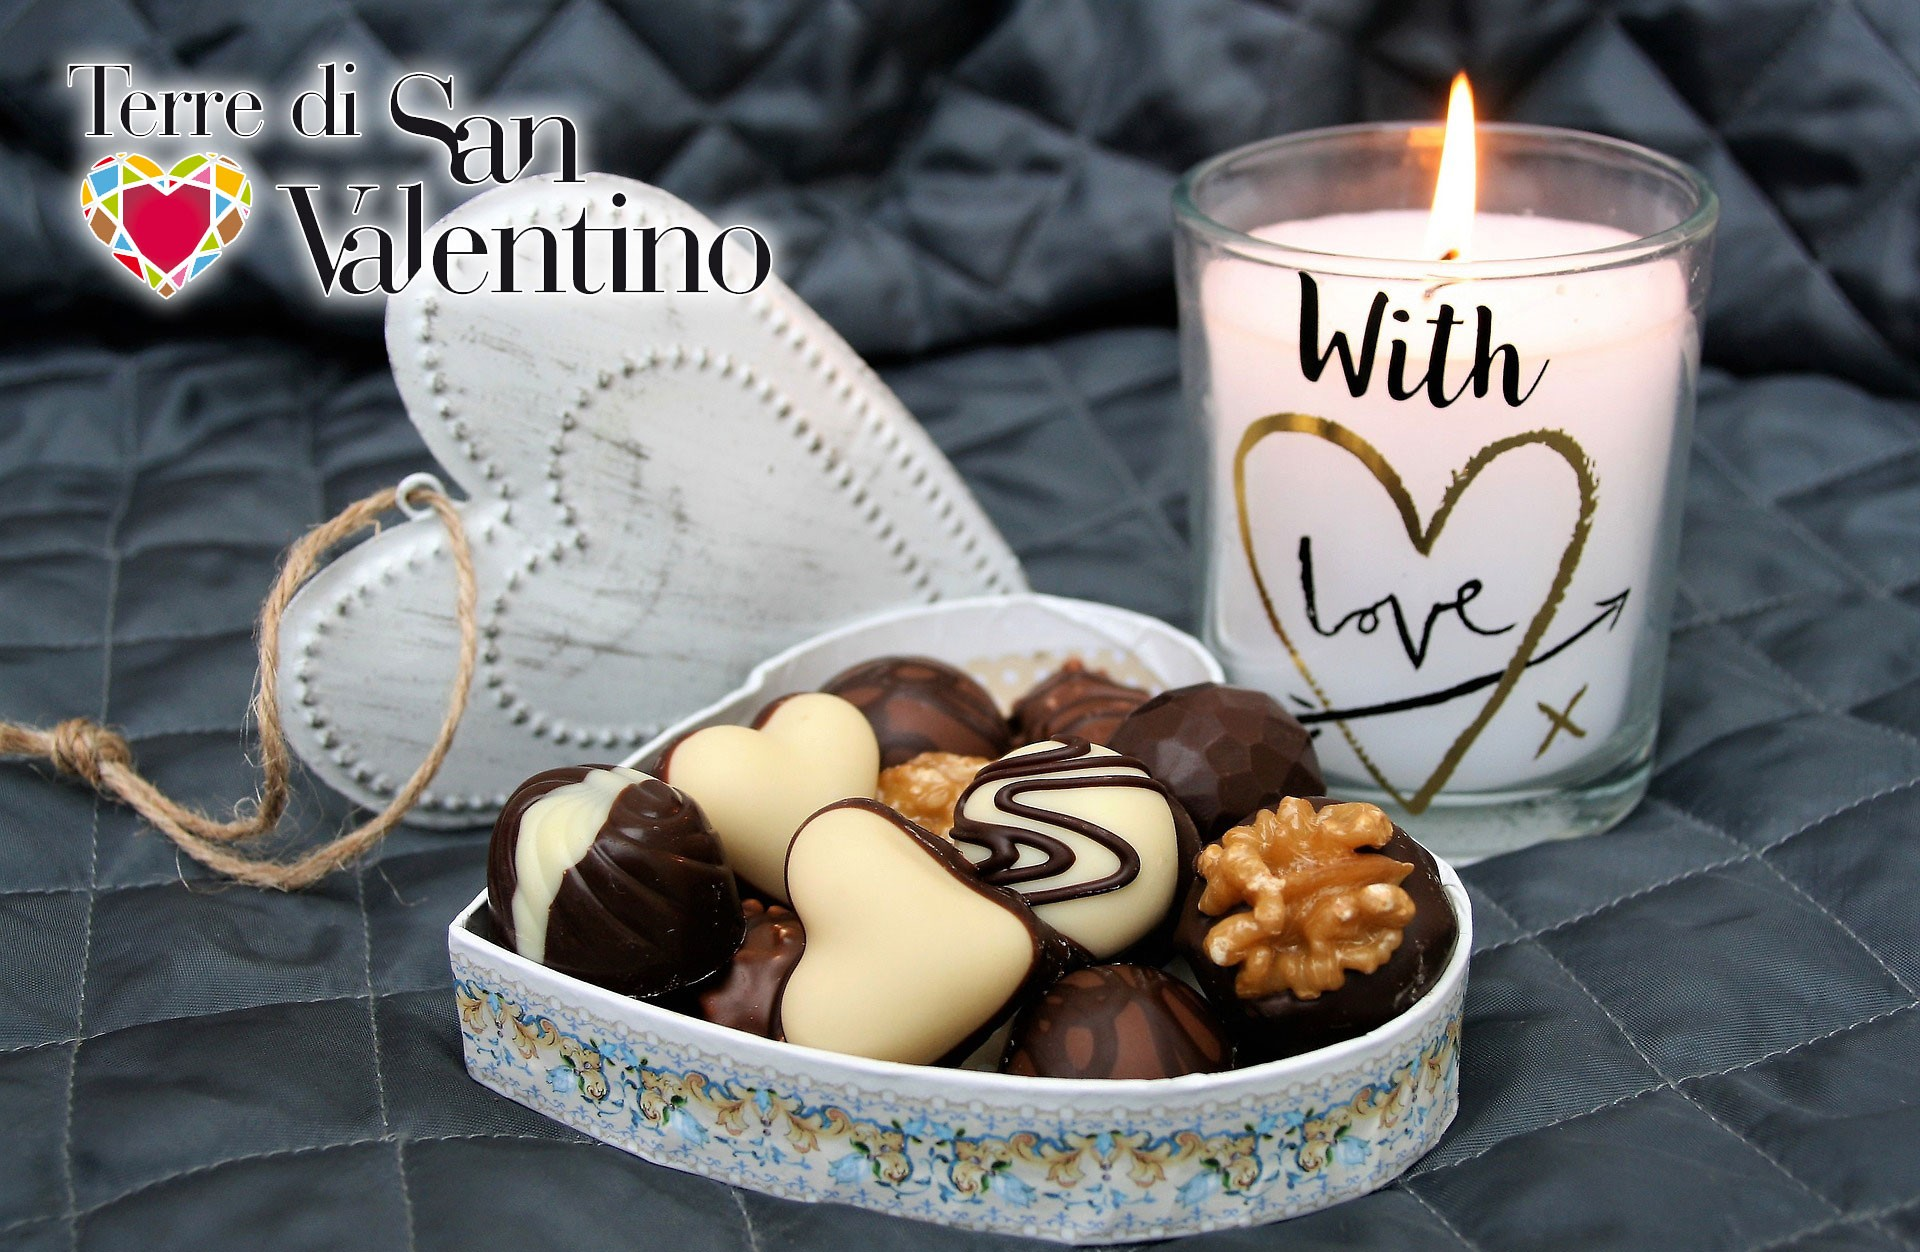 Festival of San Valentino Lands in Terni: love and chocolate